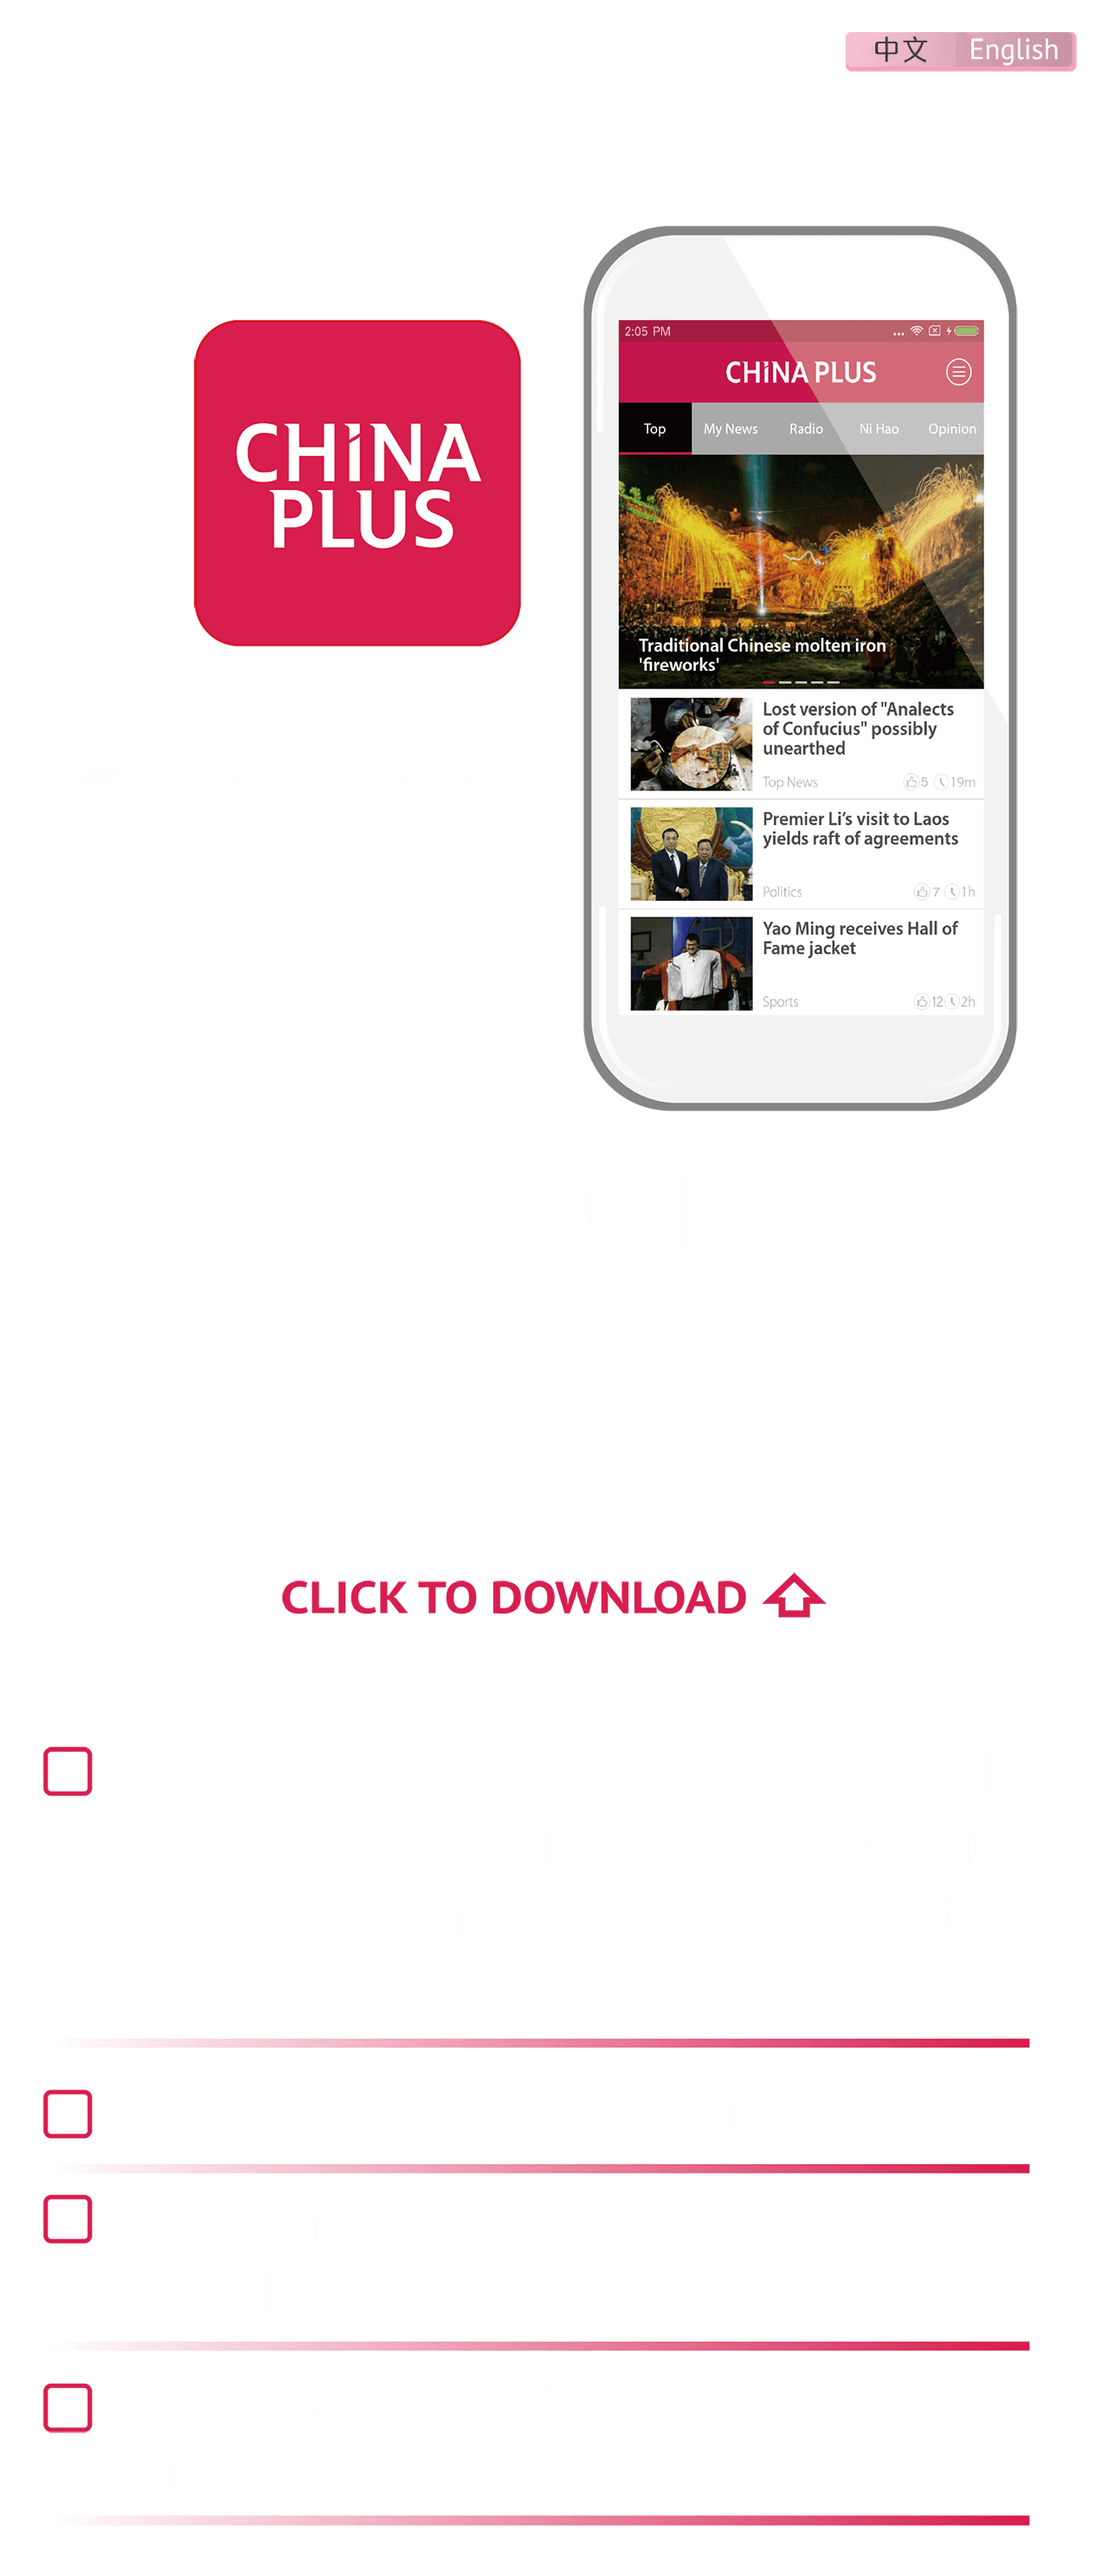 China Plus everythins is focus,all in one place